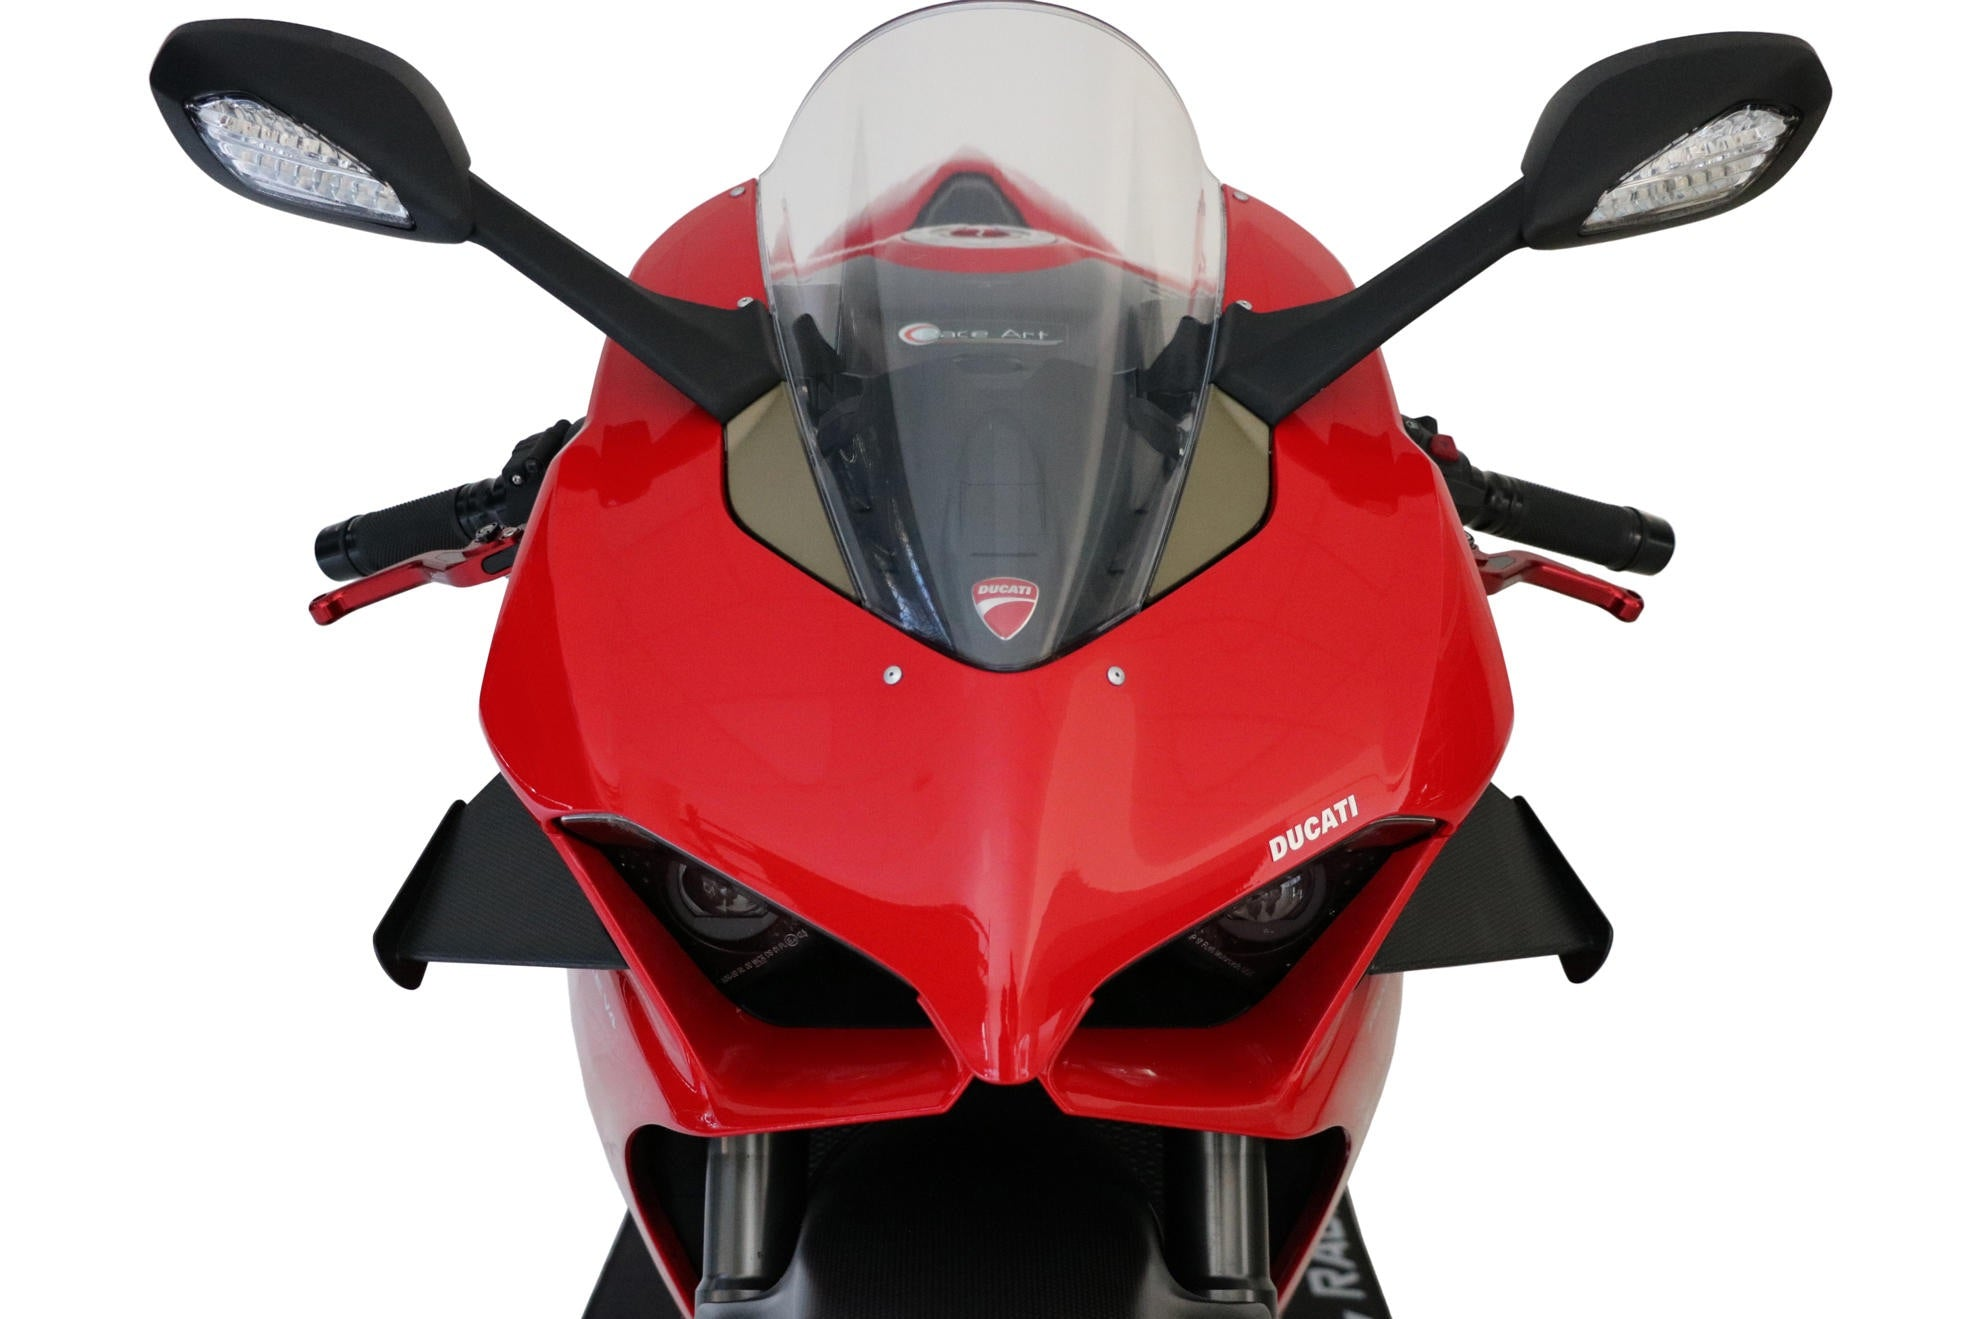 CNC Racing Carbon Wings - Panigale V4/S, Carbon Parts, CNC Racing - Averys Motorcycles